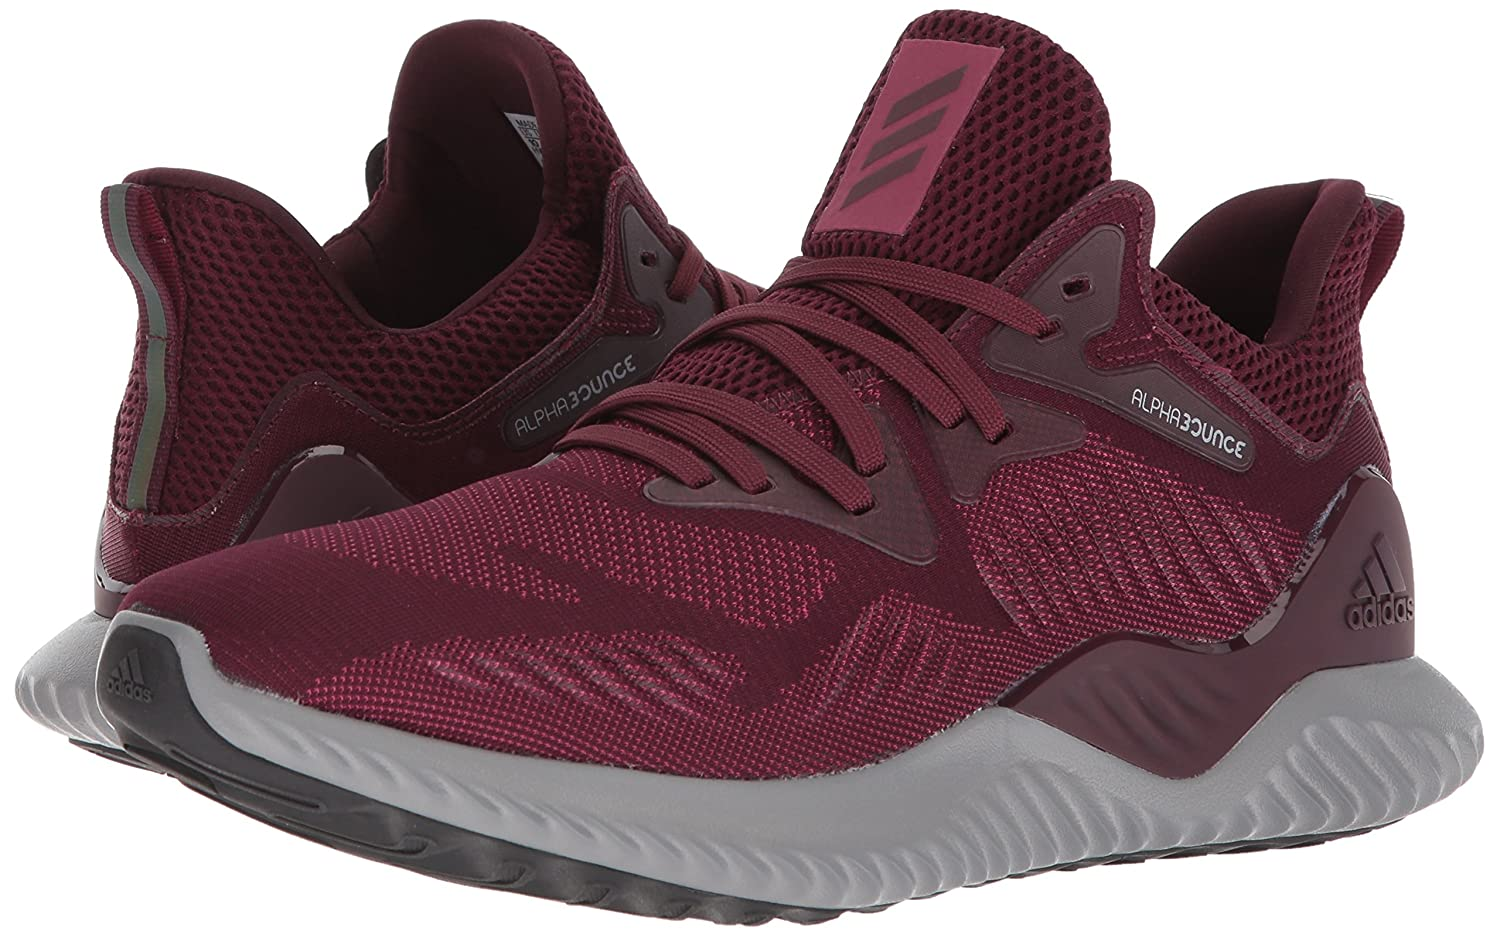 best sneakers 62d59 bb403 Amazon.com  adidas Performance Alphabounce 2 m, MaroonMaroonMystery  Ruby, 16 Medium US  Road Running